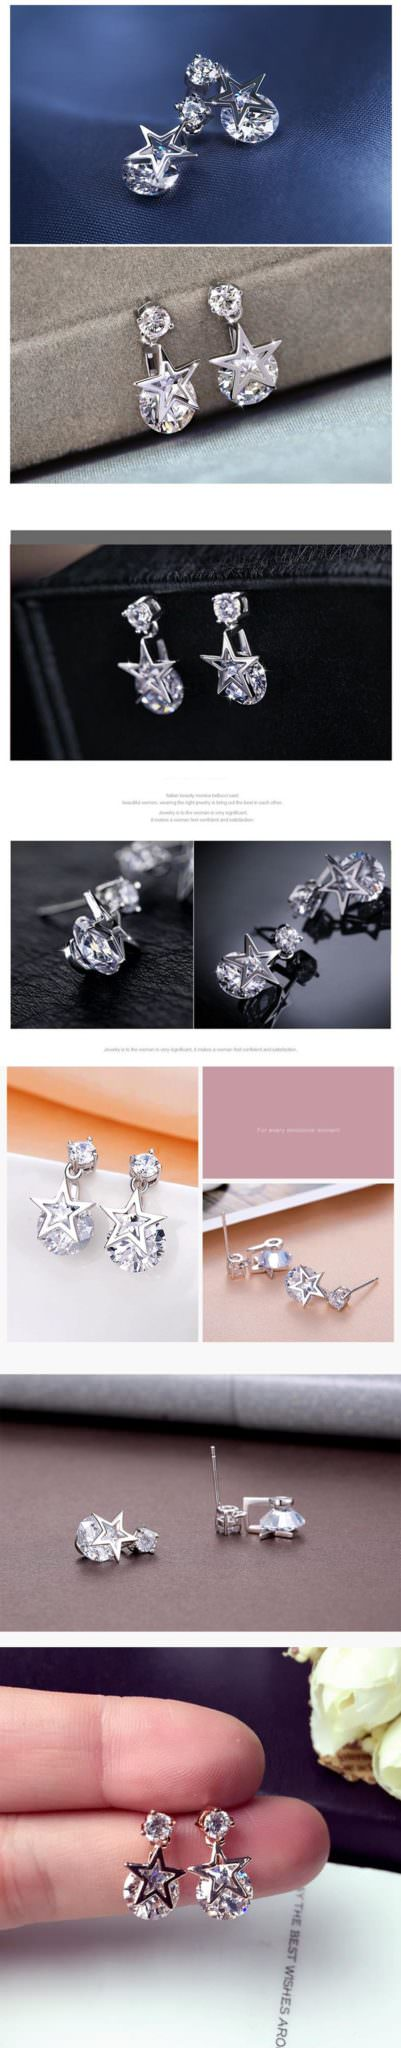 11578-795c51e3f607dcf2875dae91d8b03059 Crystal Pentagram Cubic Zirconia Fashion Jewelry Earrings